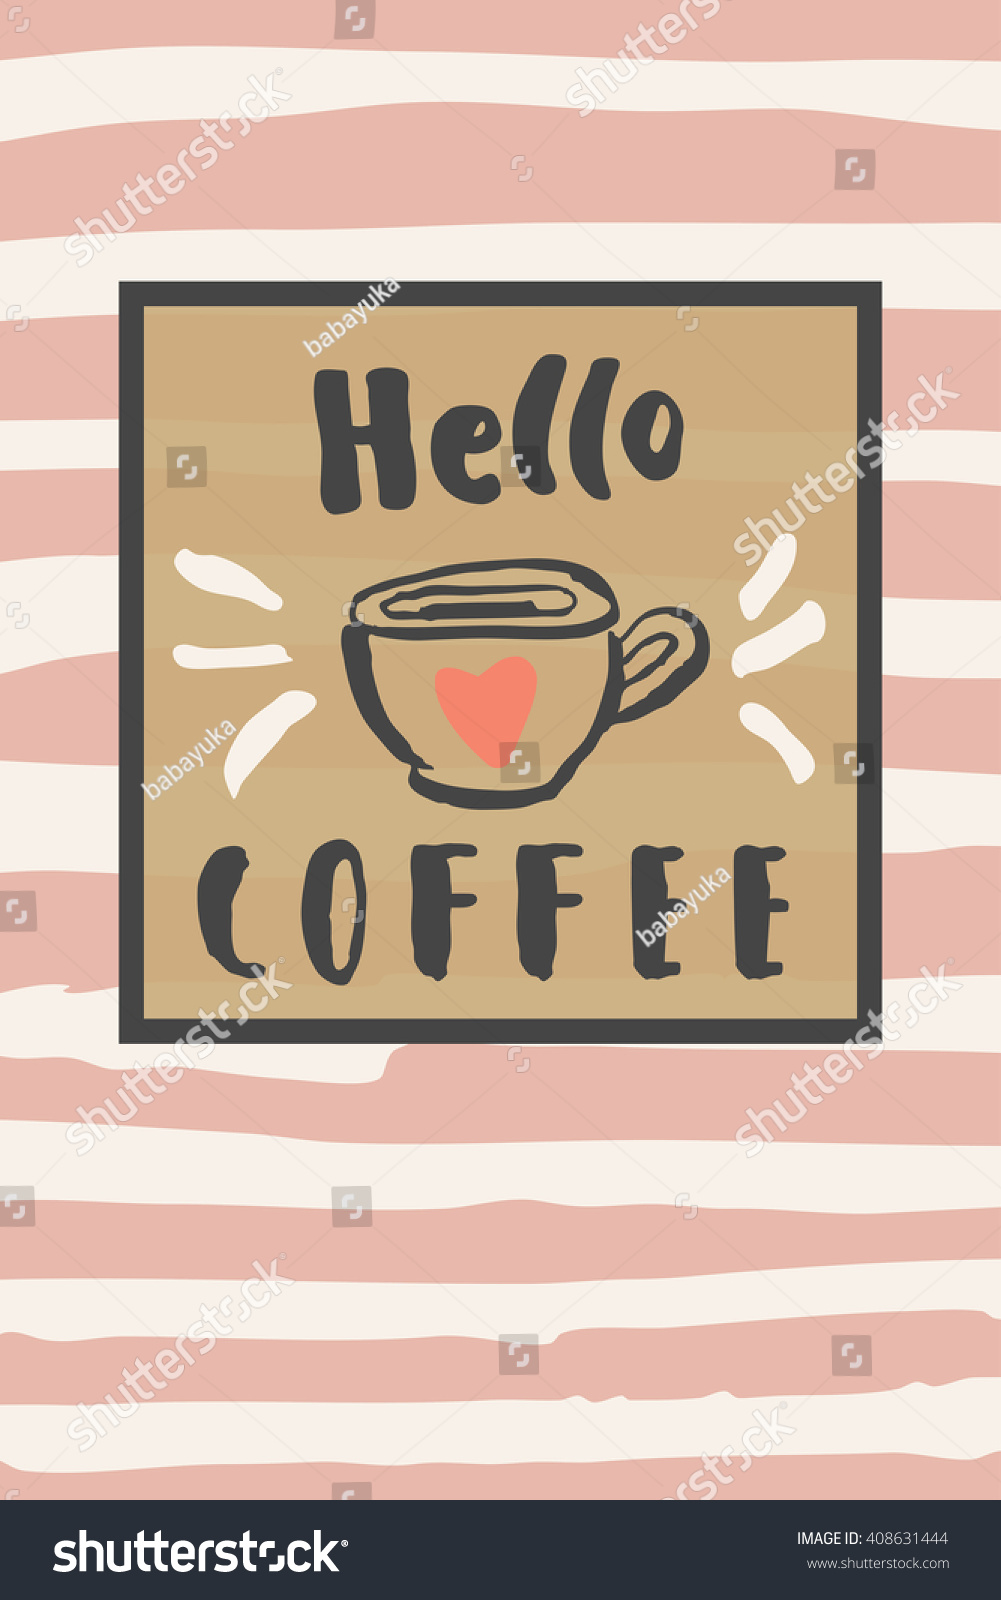 Hello Coffee. Inspirational Quote. Coffee Motivational Poster. Hand Drawn  Cup With Hand Lettering